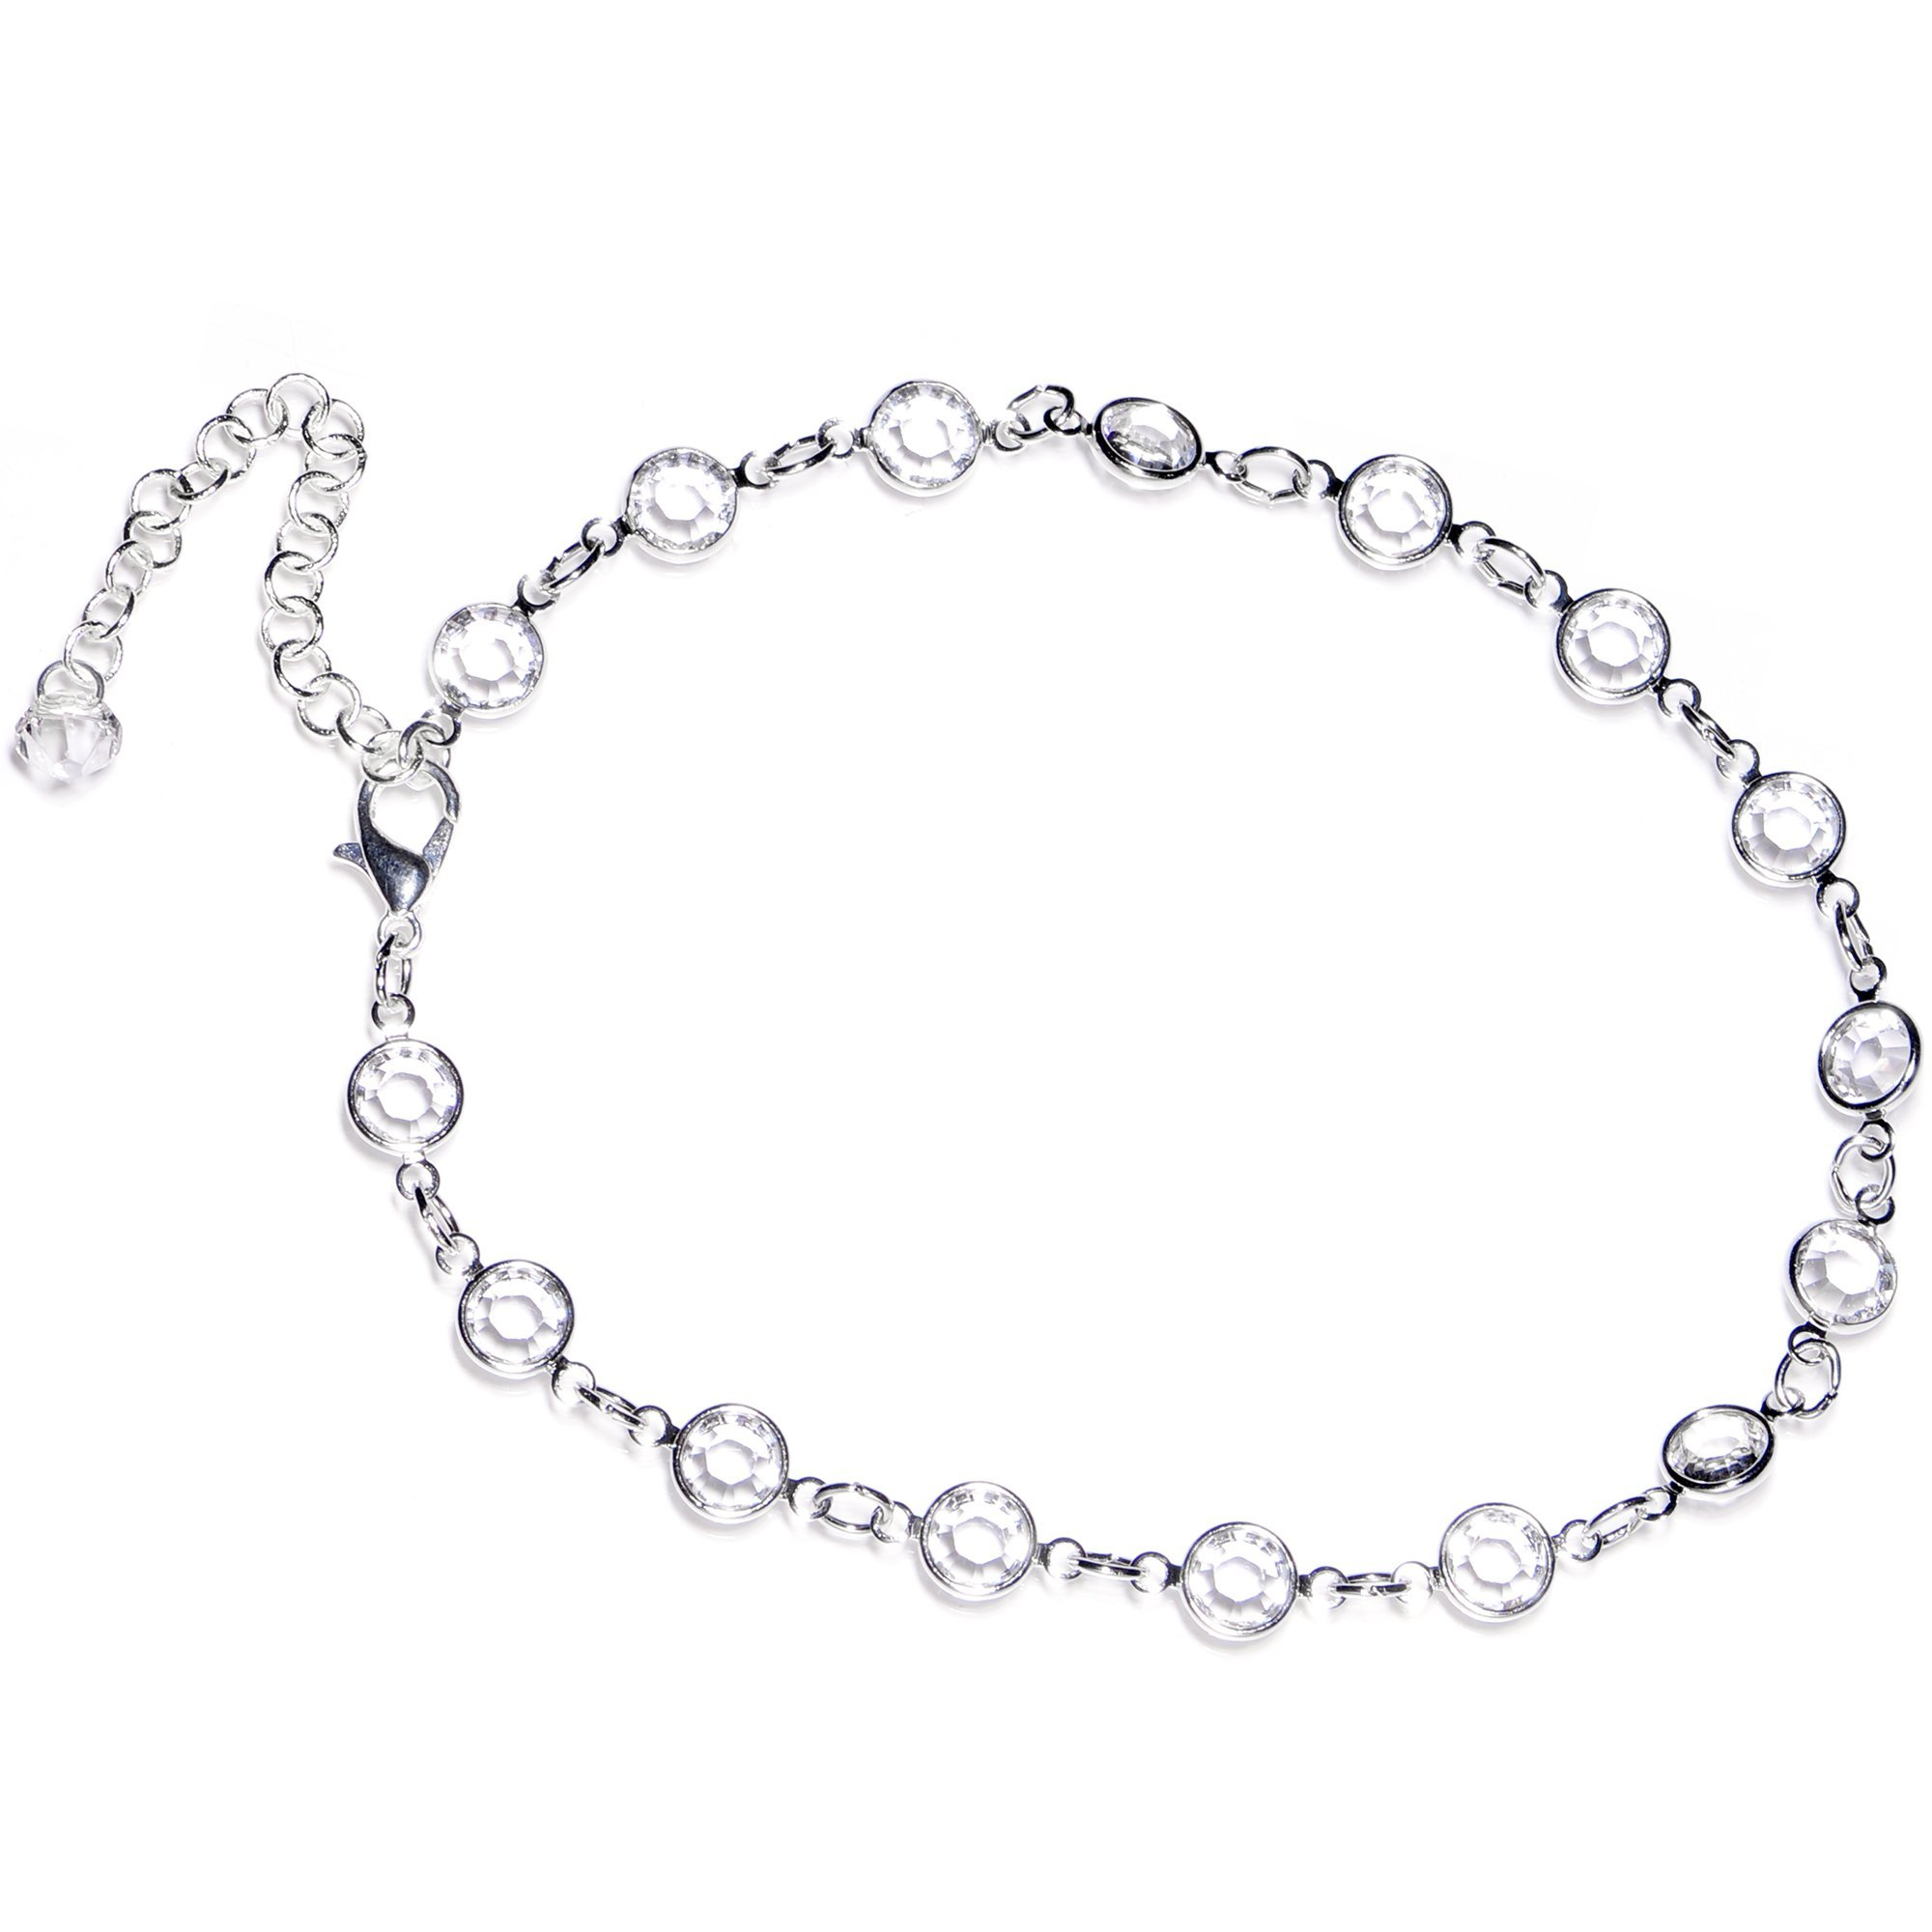 Body Candy Handcrafted Clear Accent Adjustable Anklet Created with Swarovski Crystals